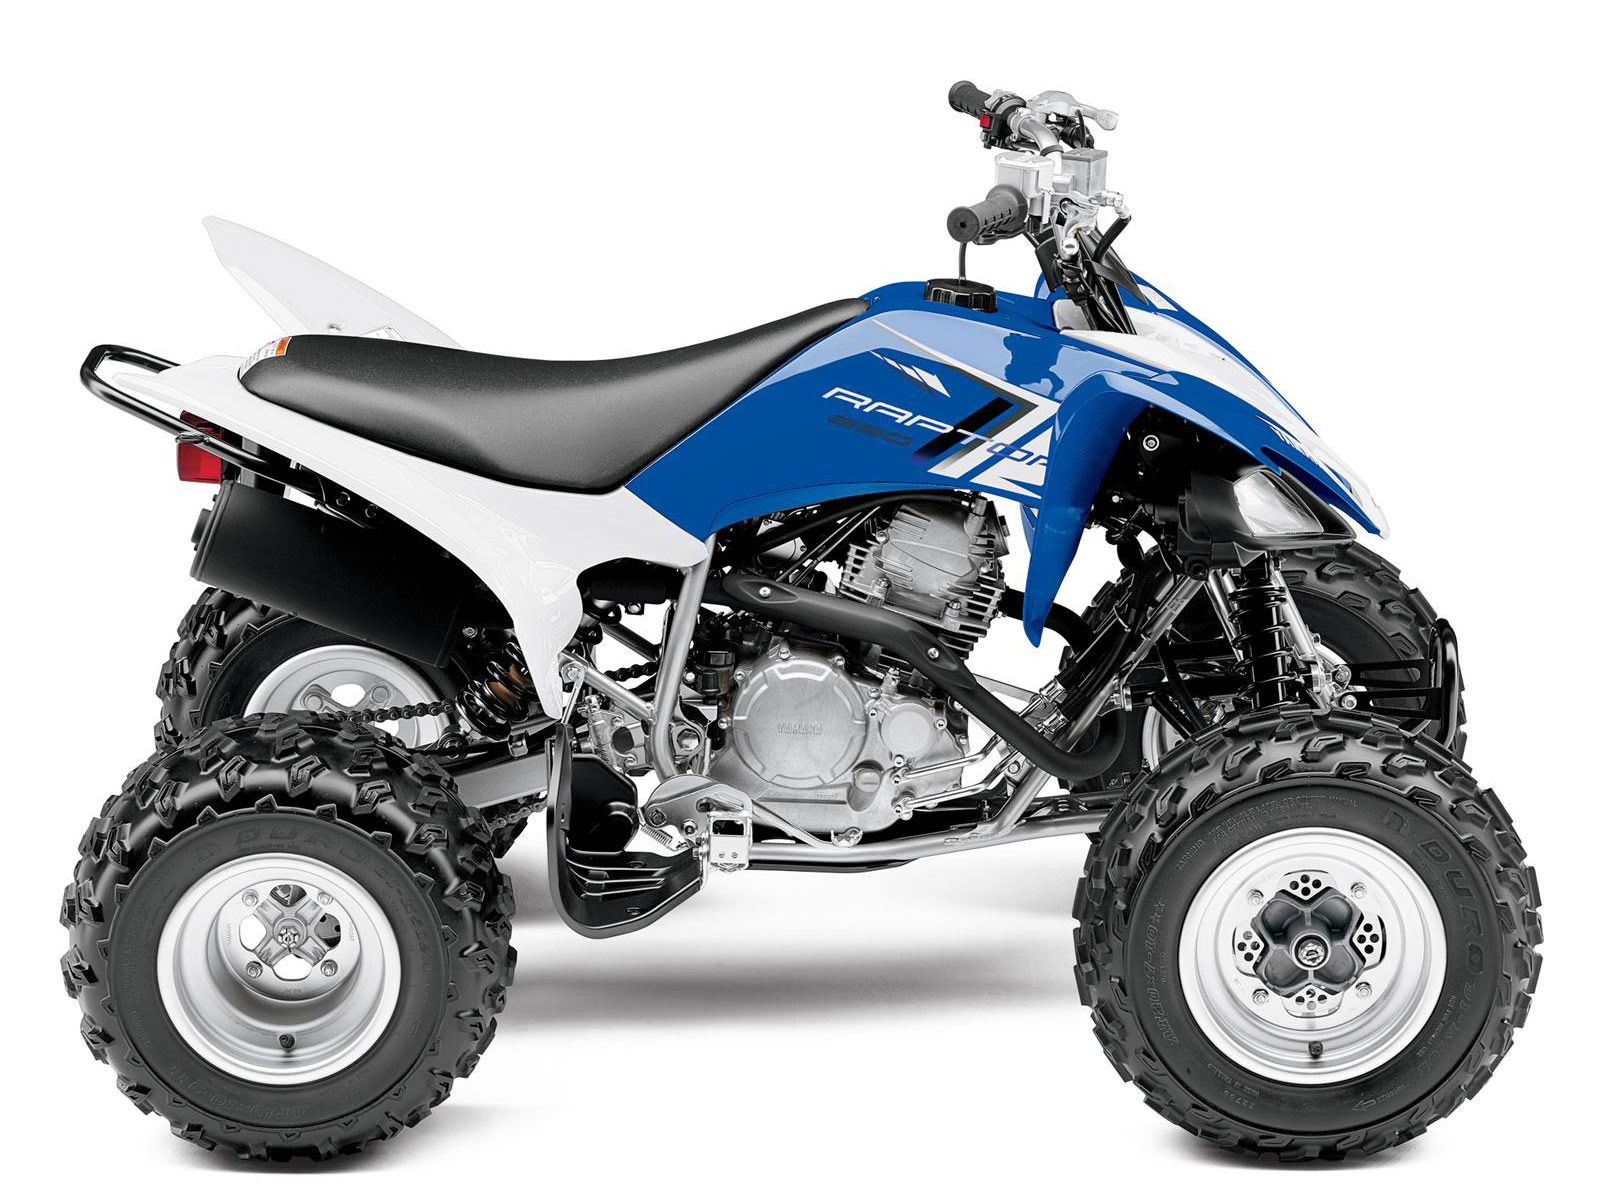 2013 yamaha raptor 250 usa canada specifications for Yamaha raptor 250 price